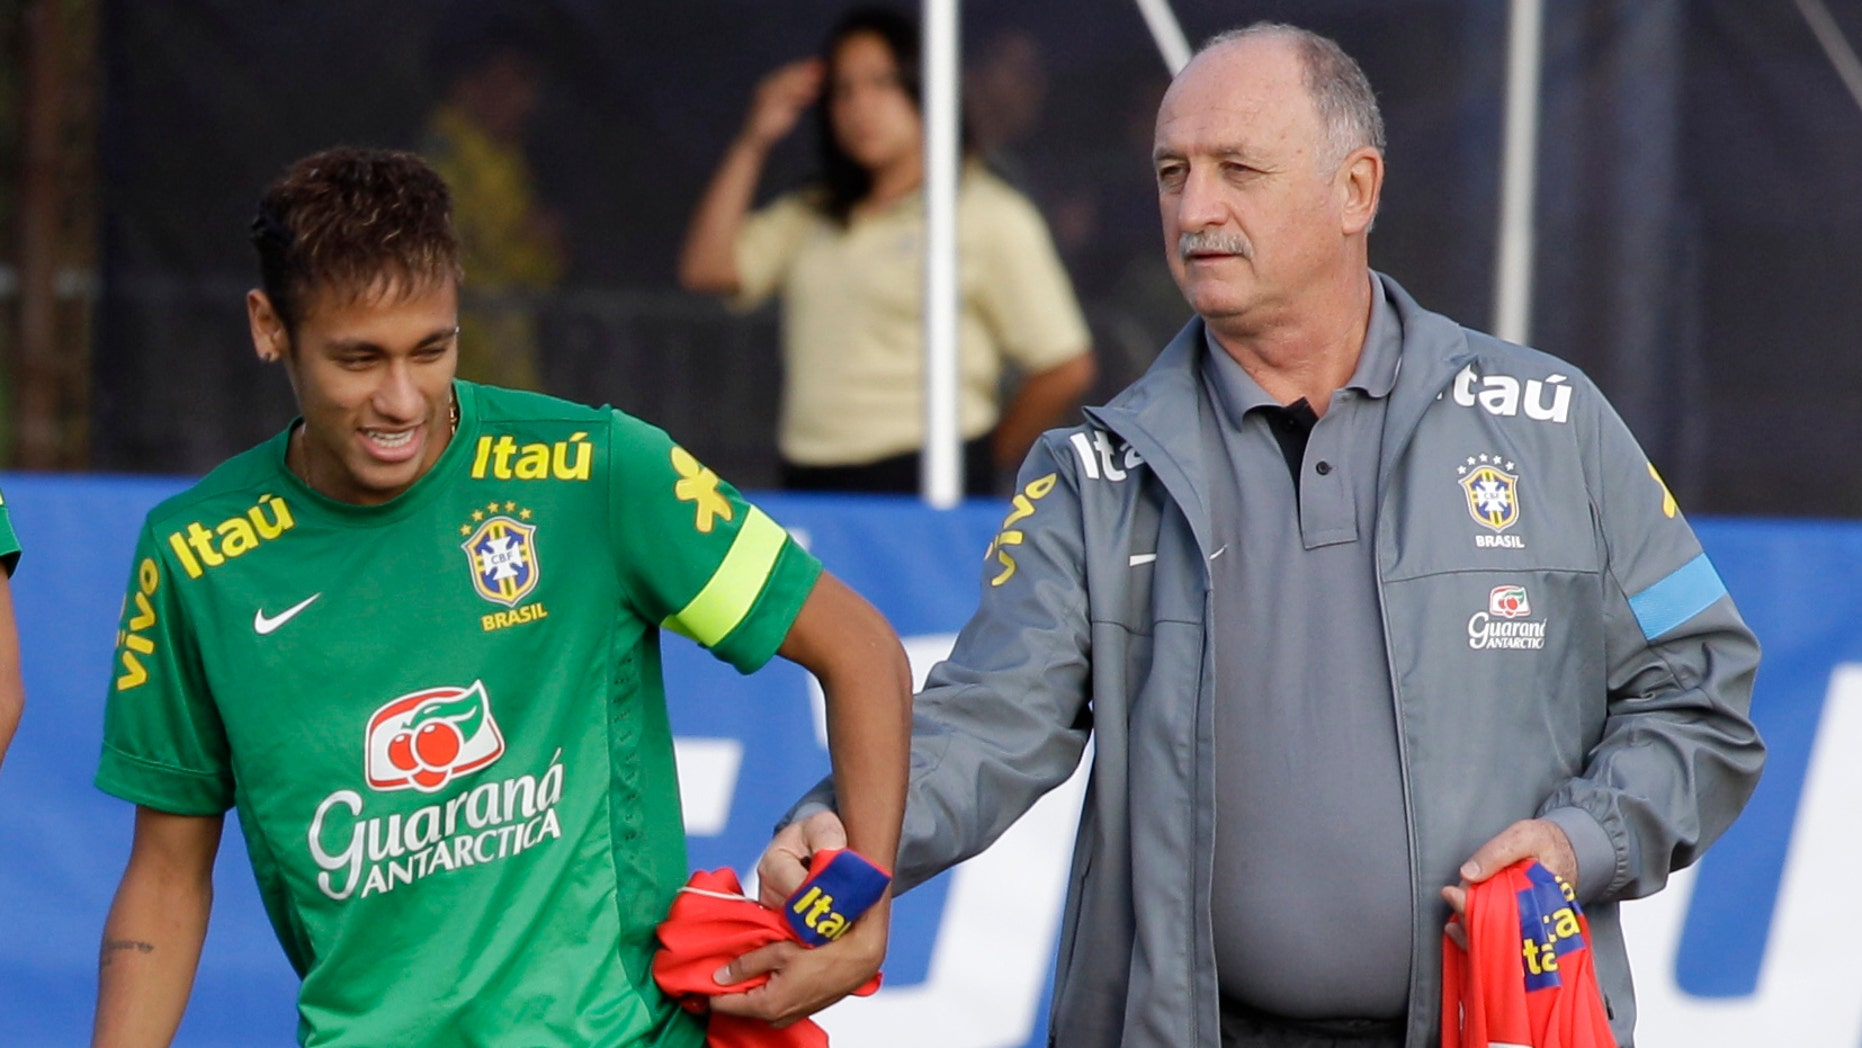 Brazil coach Luis Felipe Scolari, right, with star striker, Neymar, during a national team practice on Nov. 14, 2013 (AP/Javier Galeano)